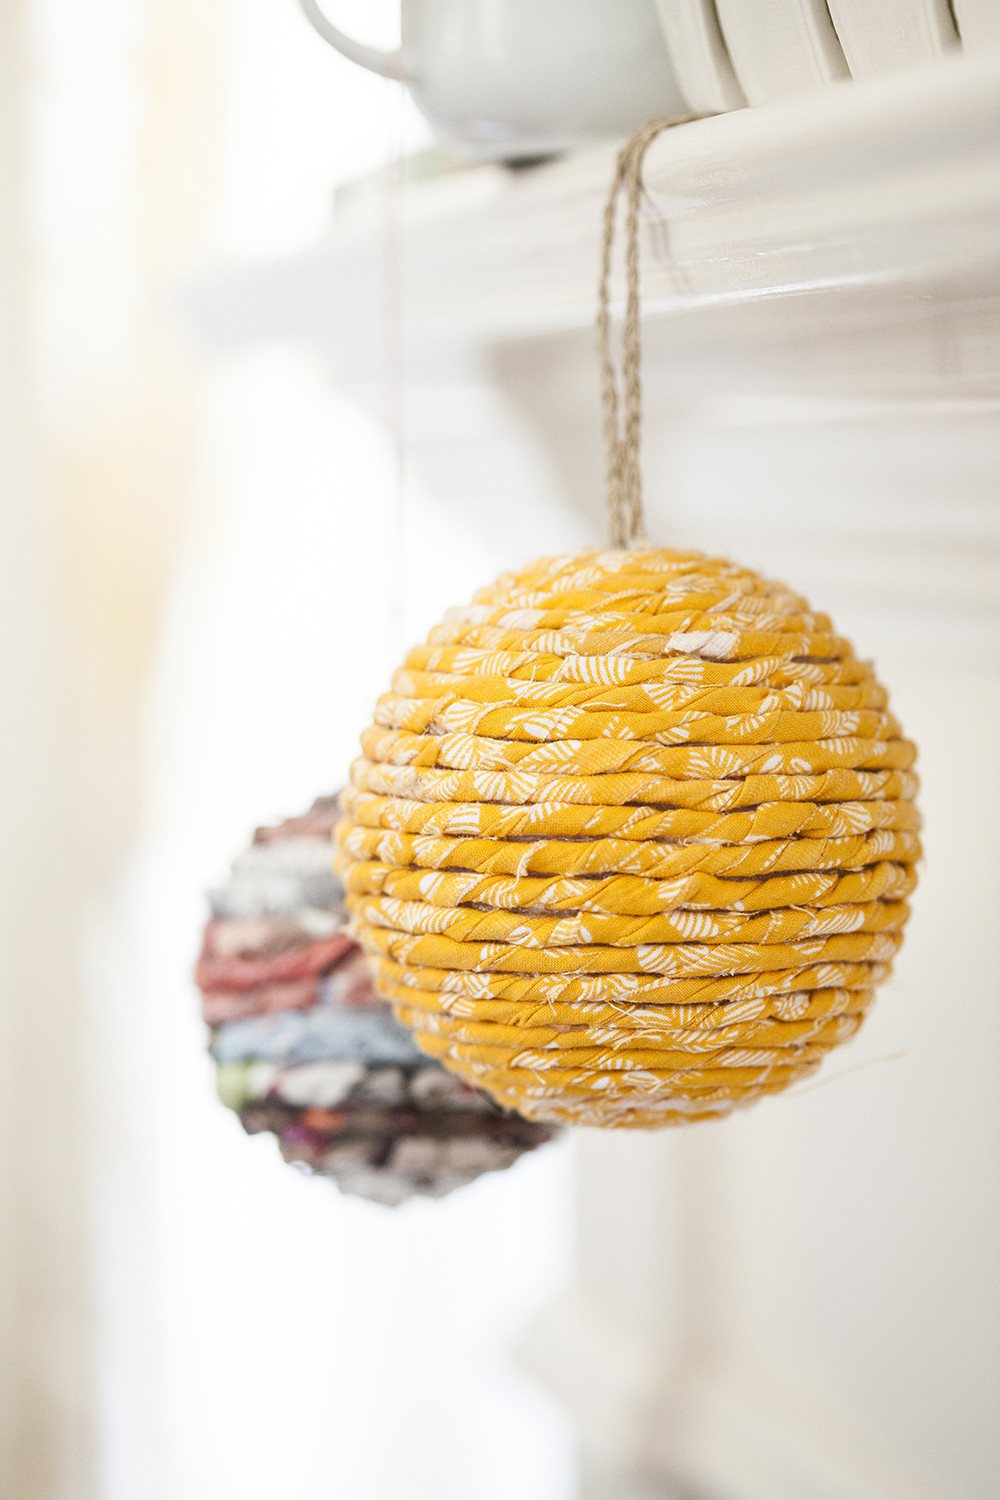 Best ideas about DIY Christmas Ball Ornaments . Save or Pin Easy DIY Wrapped Ball Ornament Now.